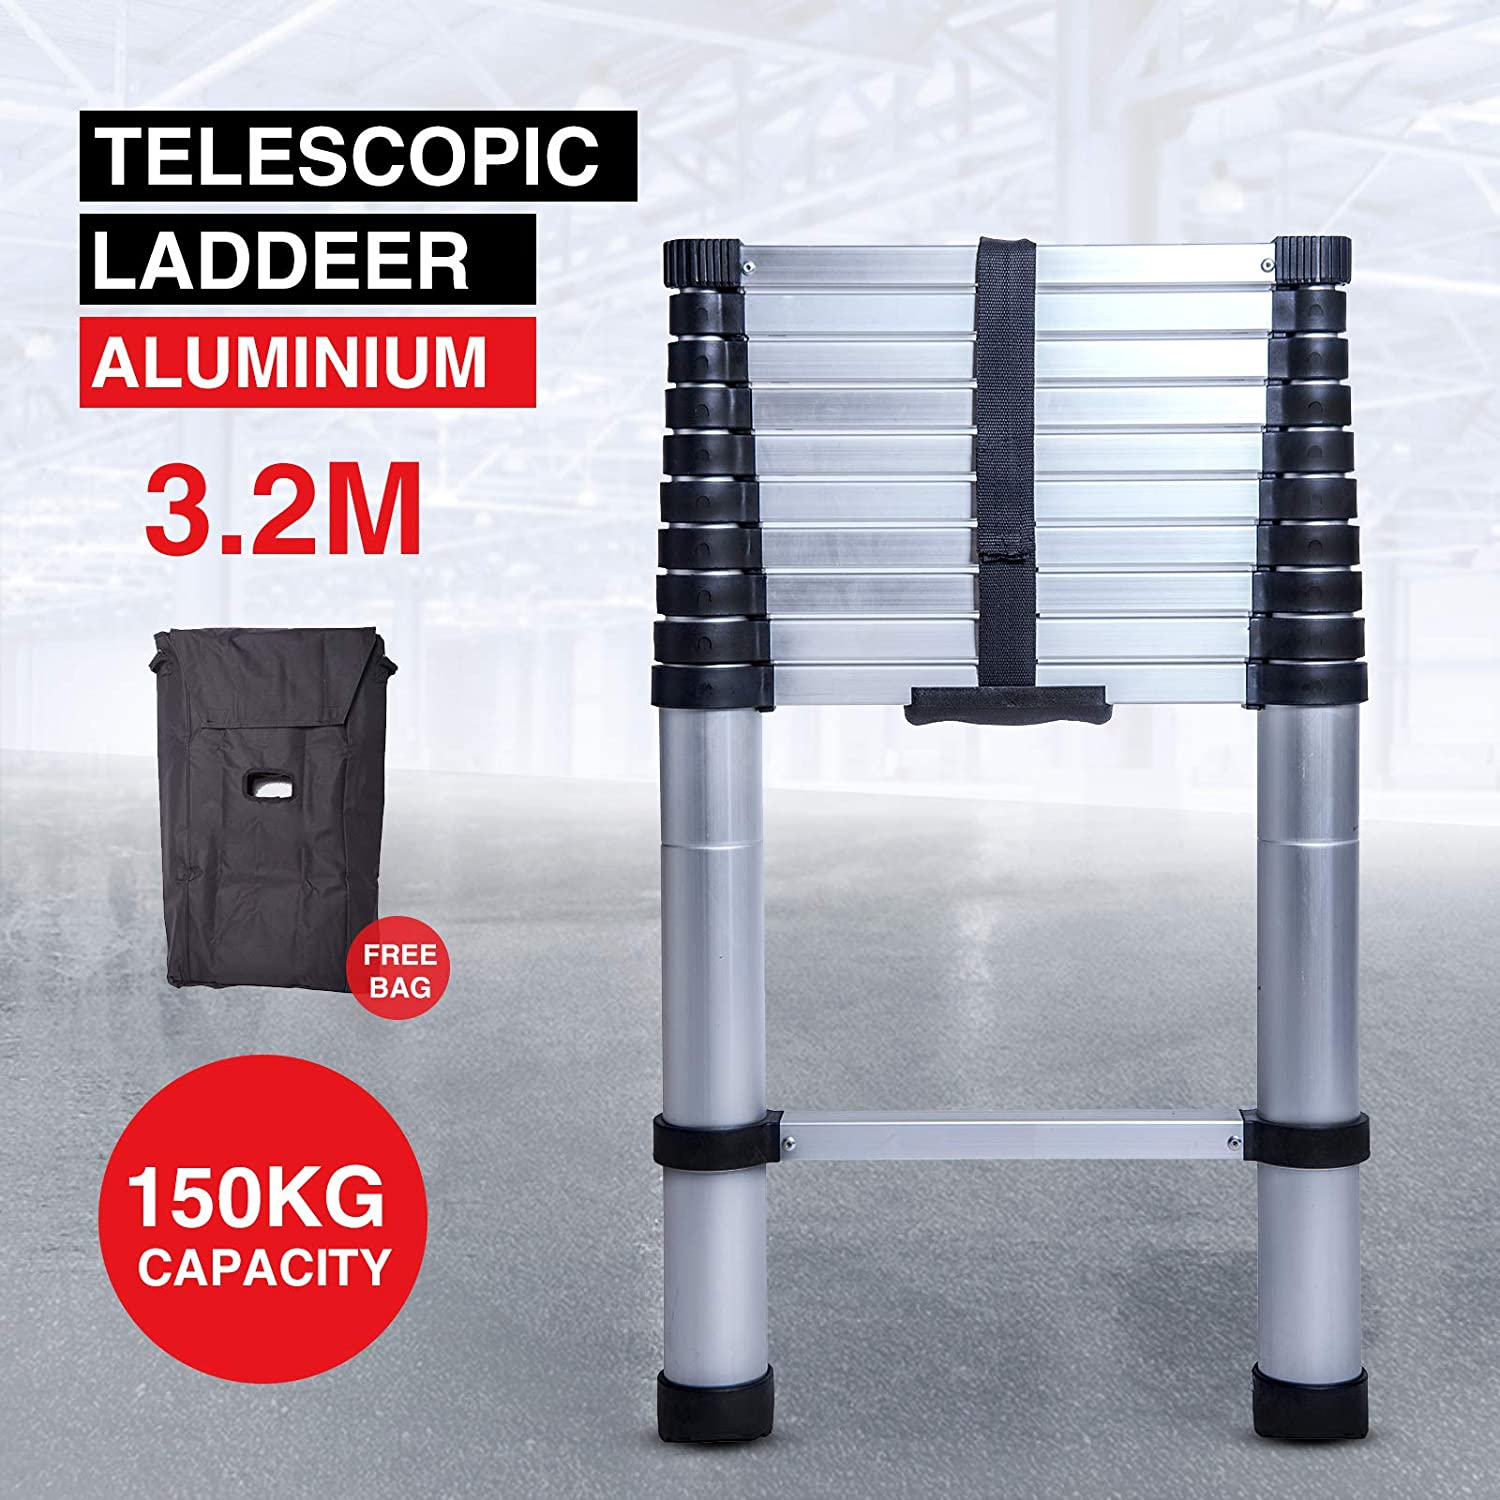 Idealchoiceproduct 10.5 FT Aluminium Telescopic Telescoping Ladder Free bag